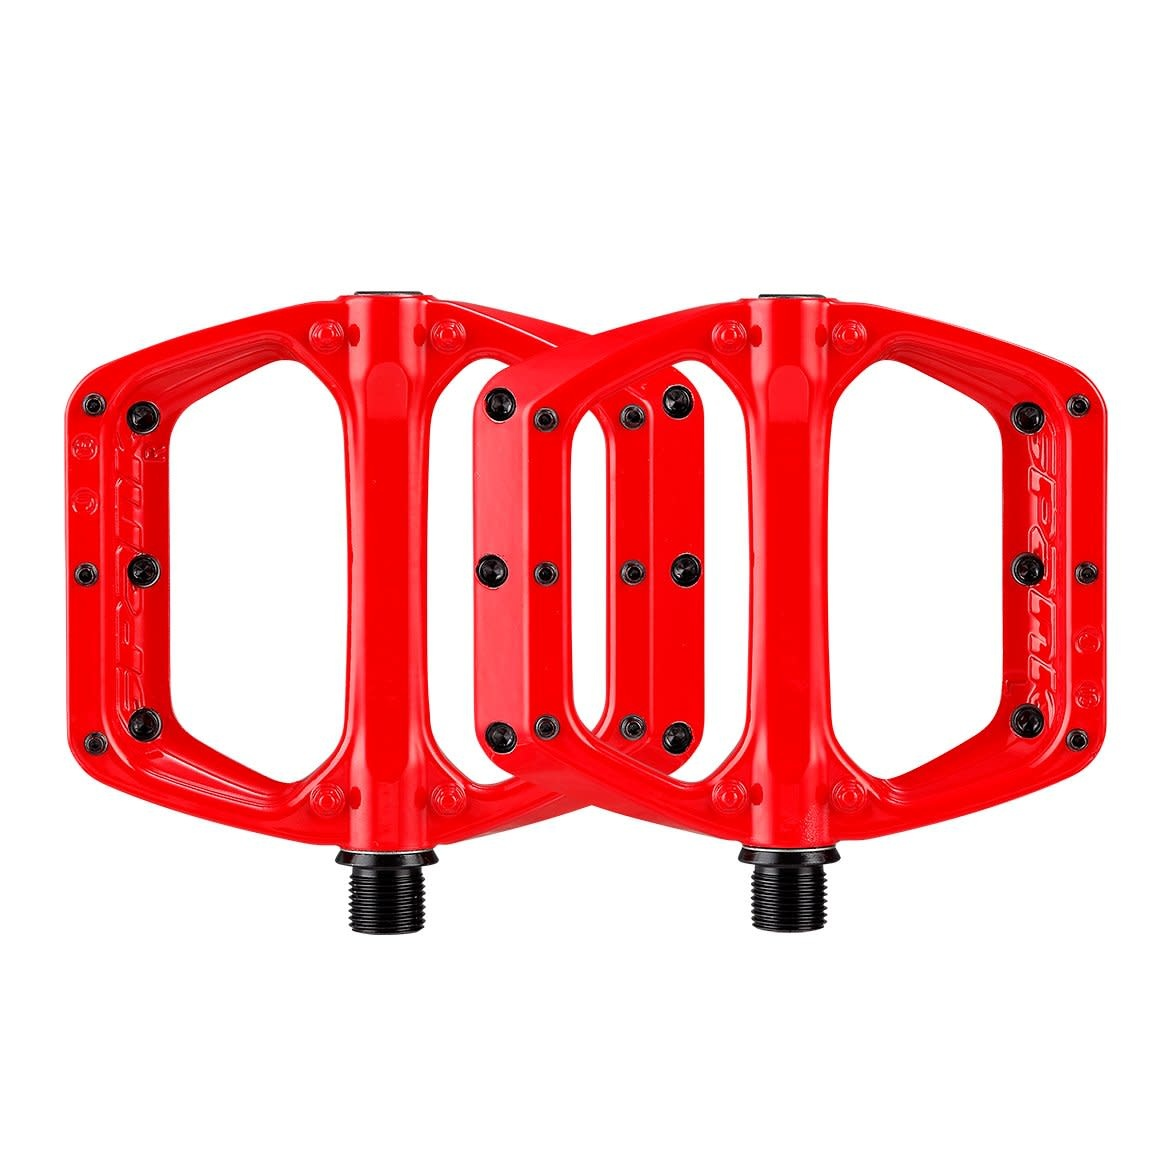 Spank Spank, SPOON DC, Platform Pedals, Body: Aluminum, Spindle: Cr-Mo, 9/16'', Red, Pair